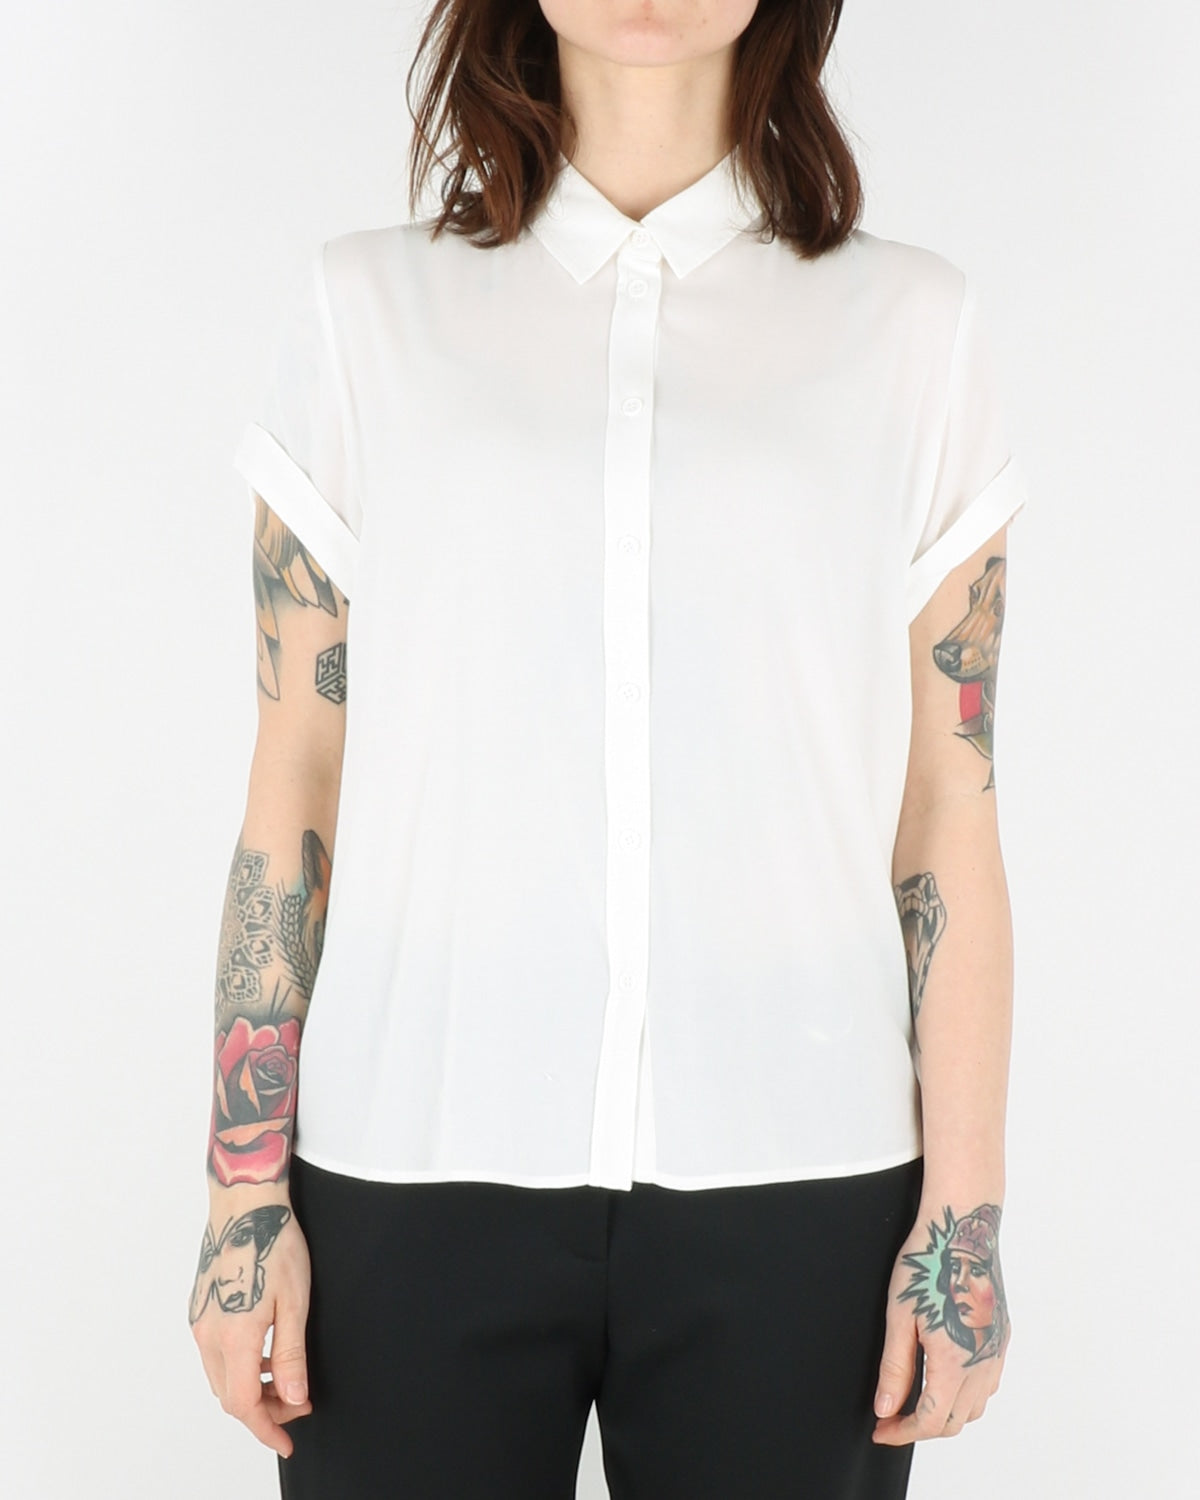 samsoe samose_majan shirt_clear cream_3_3